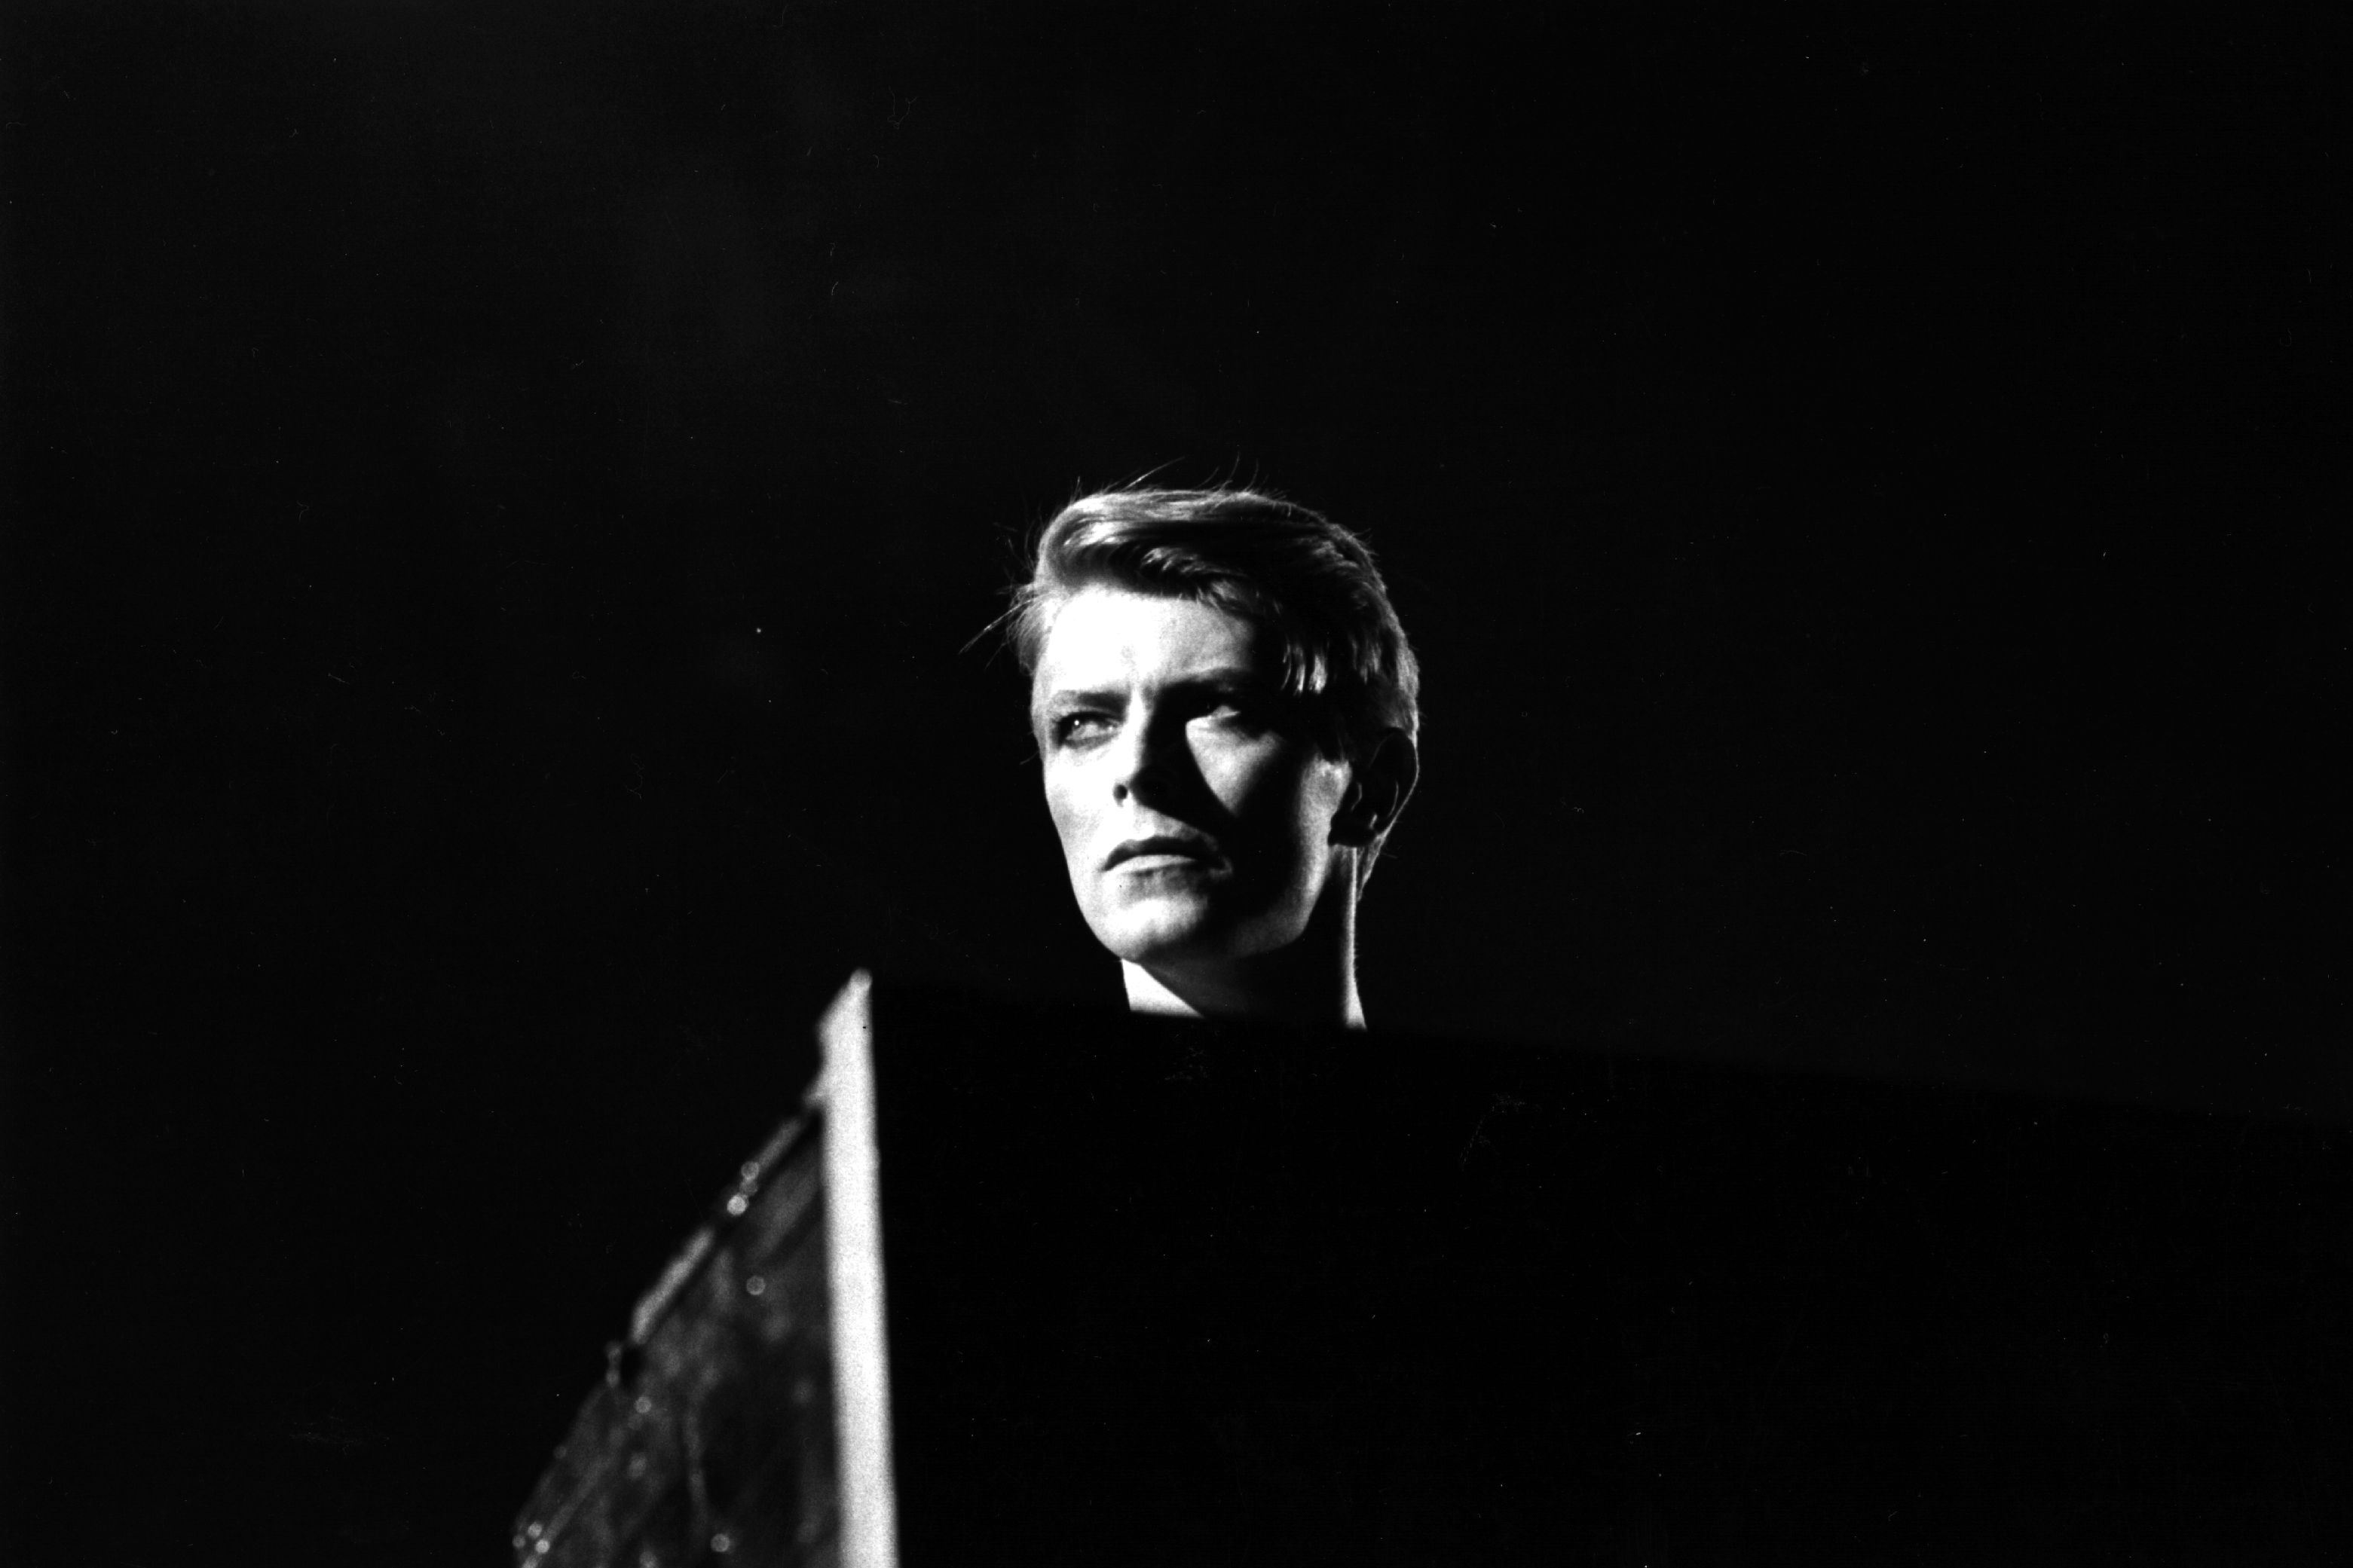 David Bowie performs at Earl's Court, London during his 1978 world tour.